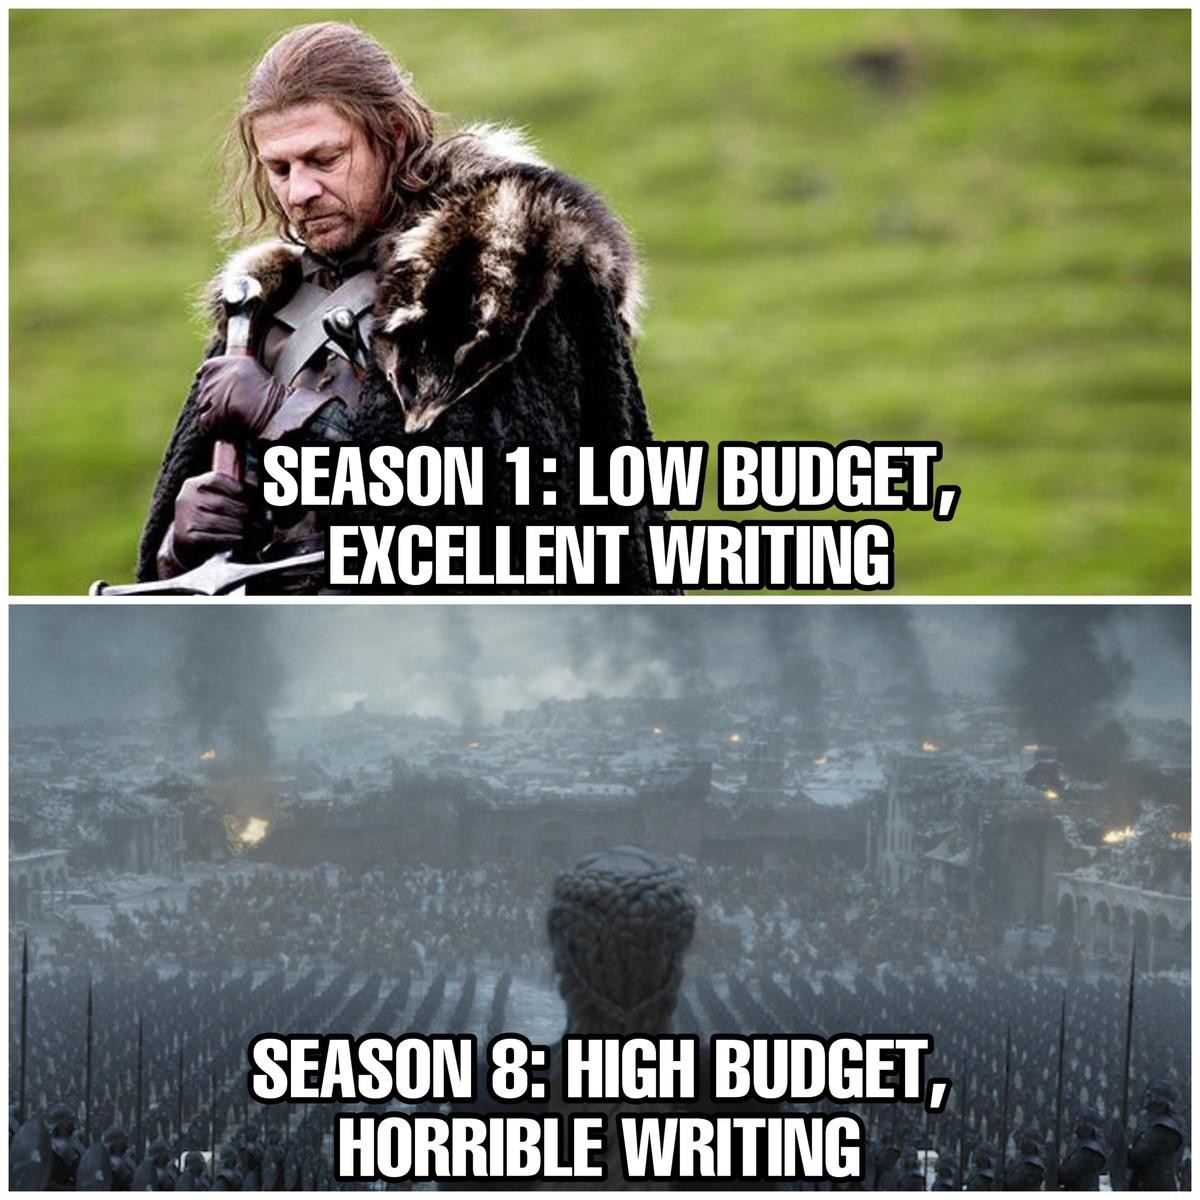 My how the tables have turned. .. That's because S1 writing was probably based on the books of a fantasy author who wrote well enough to get a show, not writers who write at a level acceptable f